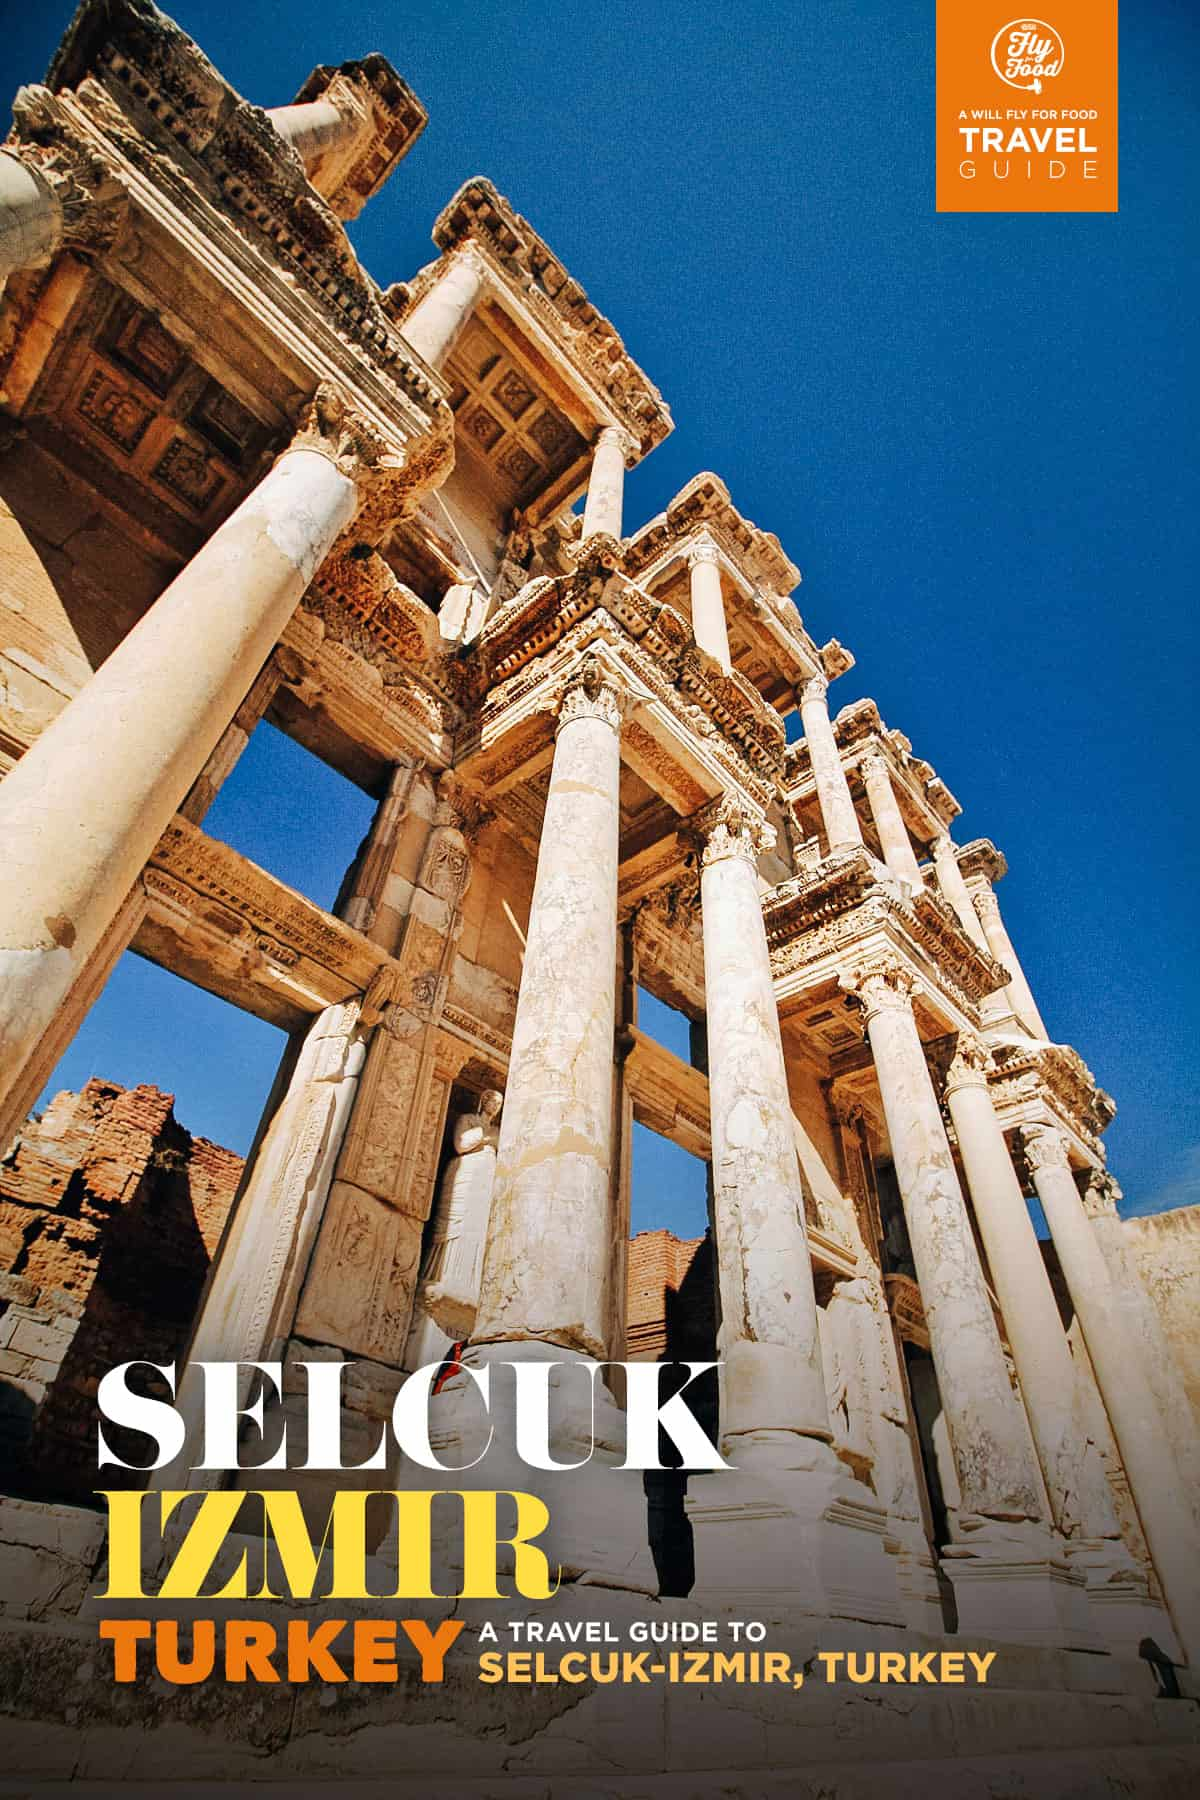 Library of Celsus, Ephesus, Selcuk-Izmir, Turkey